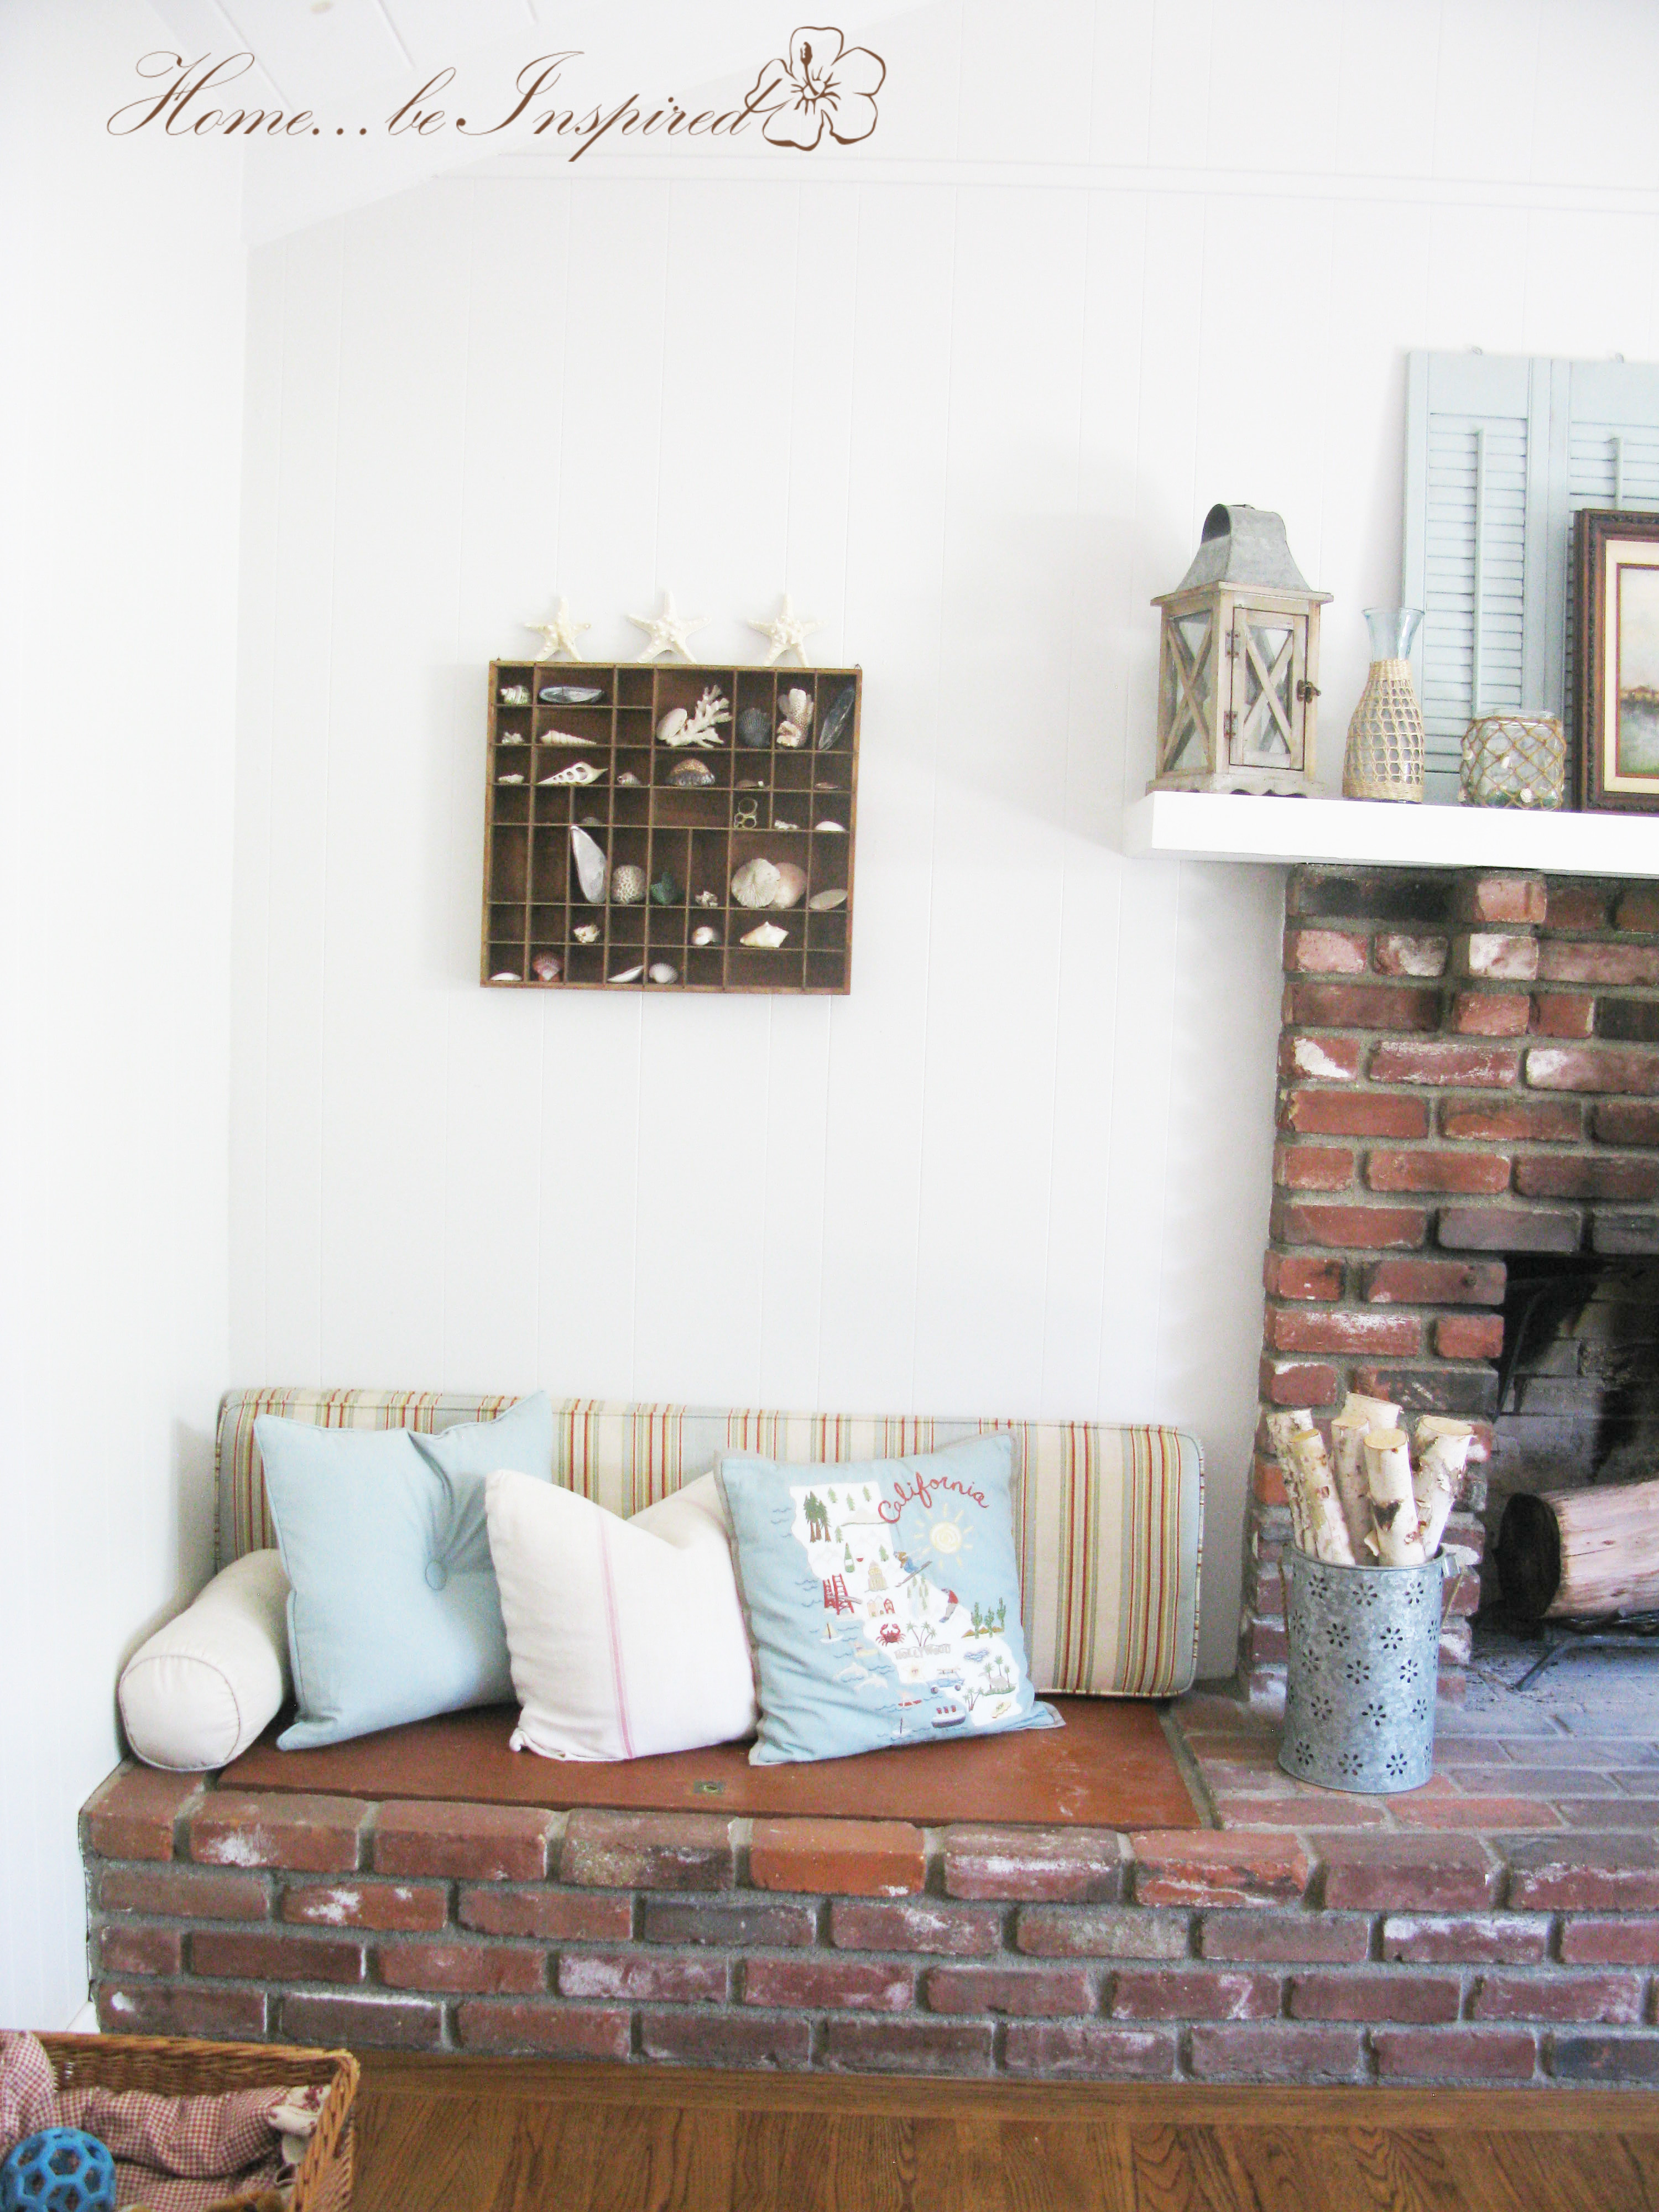 This is my favorite inspirational photo on little nooky sitting areas that surround a fireplace. I love the patterned red and white cushions